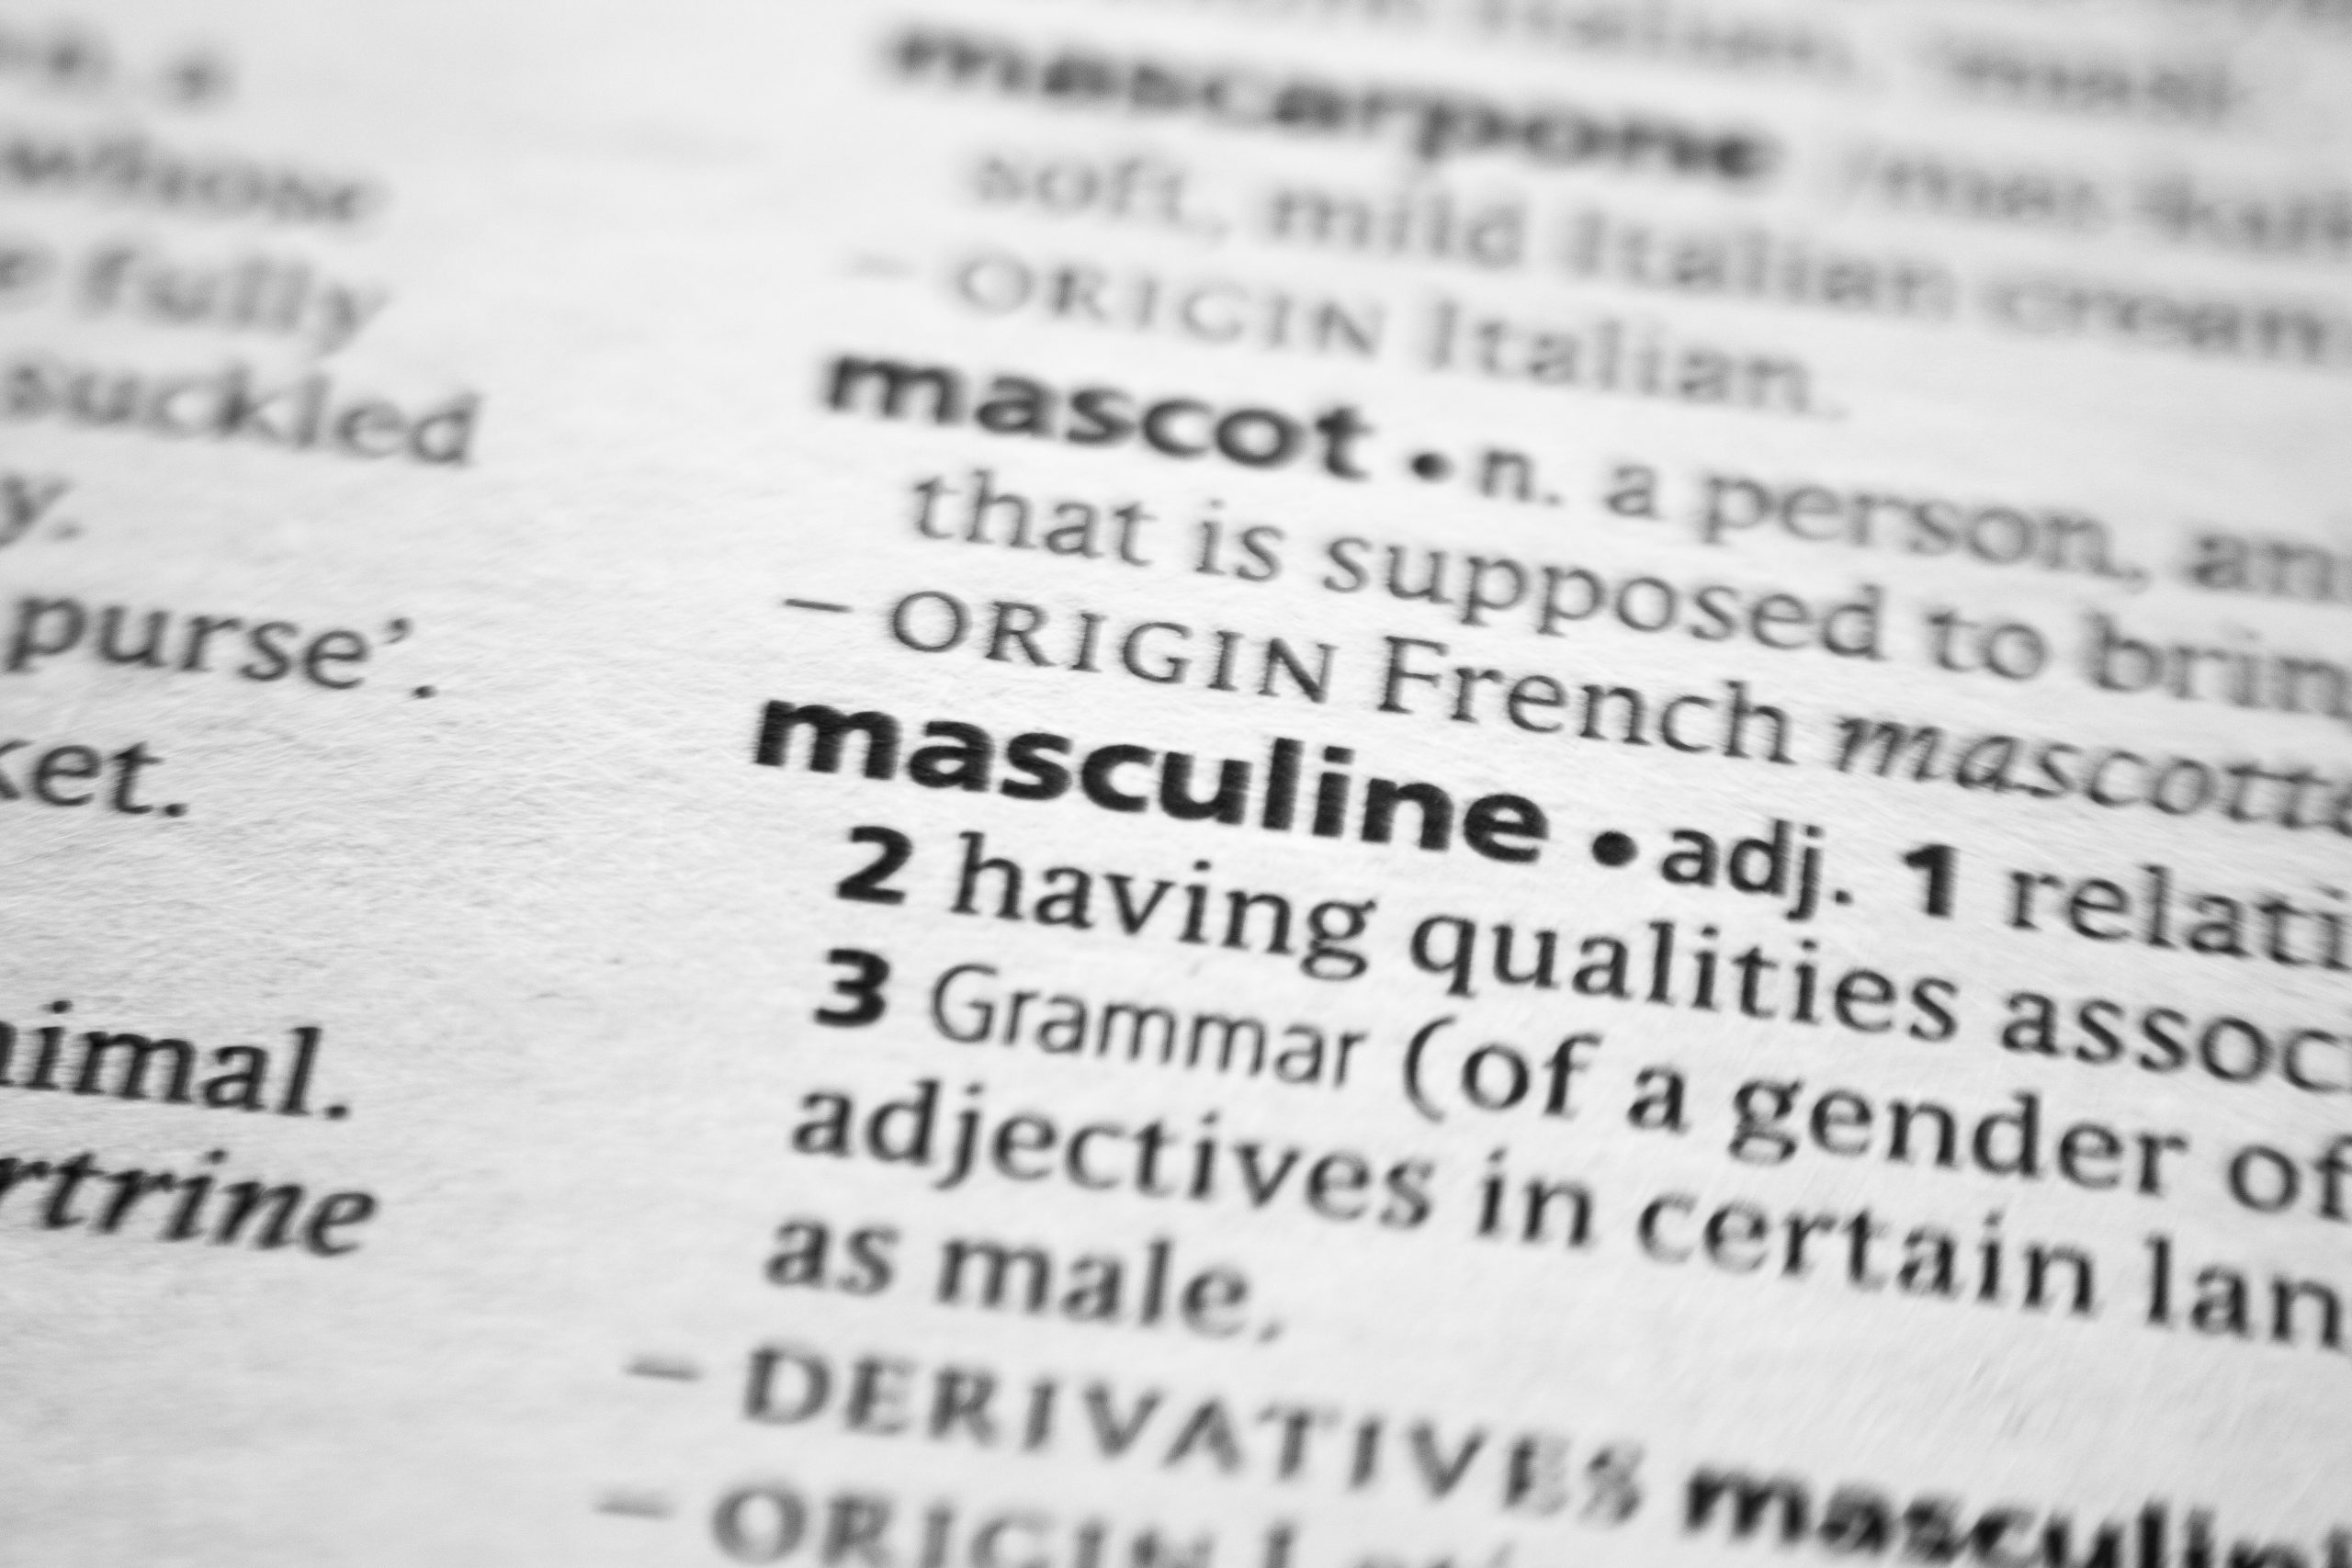 dictionary definition of the word masculine